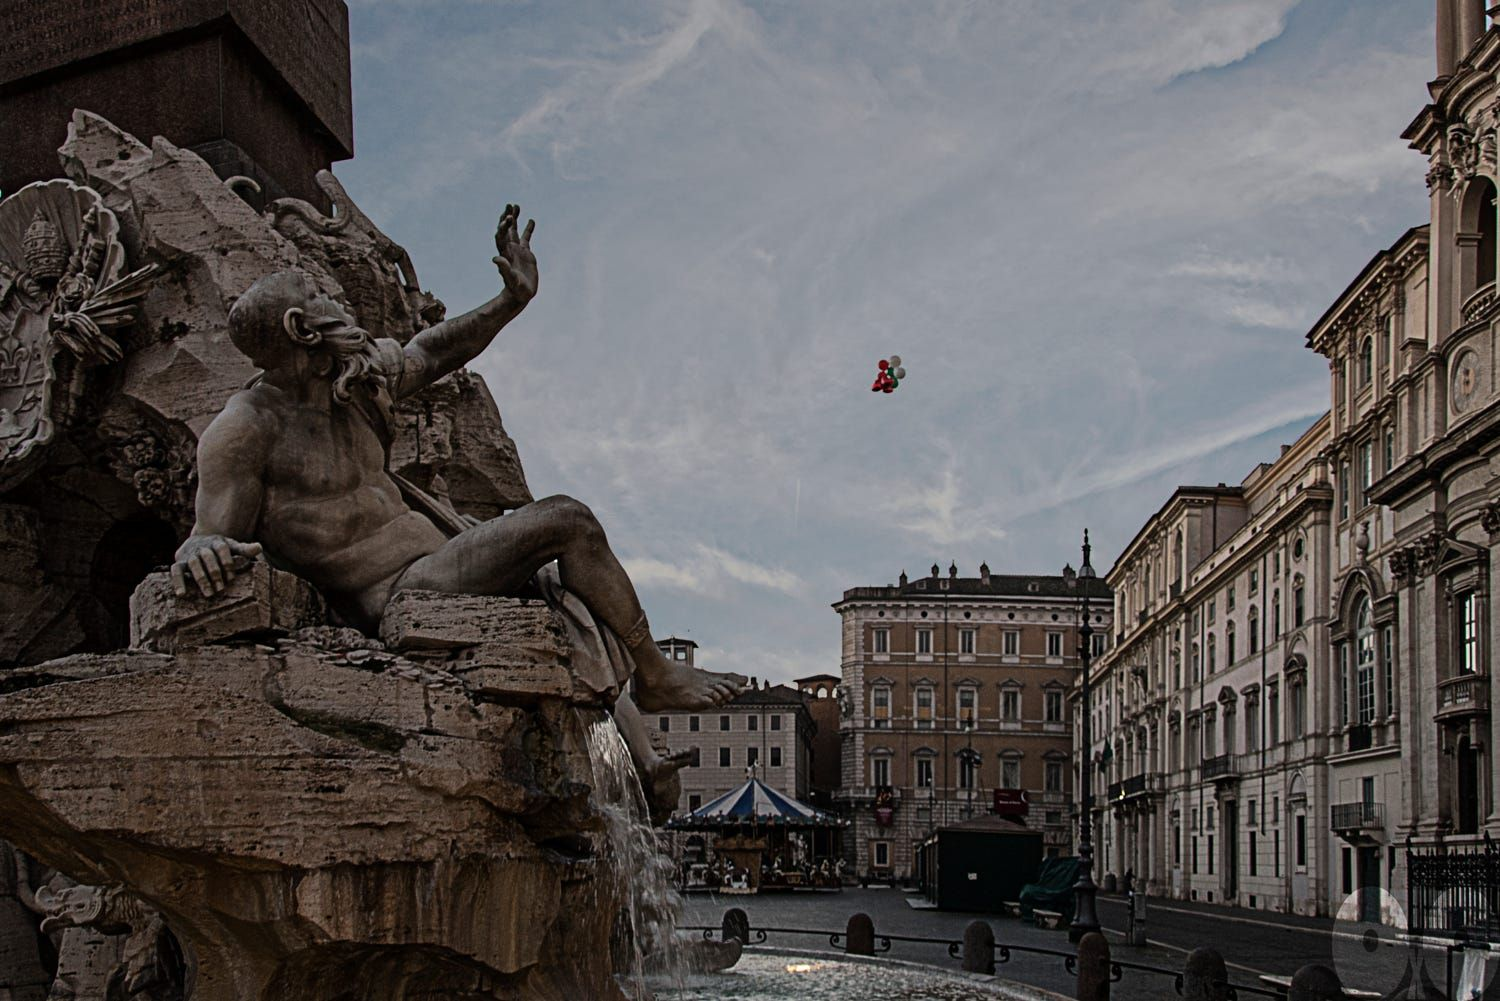 Surprised by flying balloons by occhioXocchio   | Giovanni Cappiello on 500px